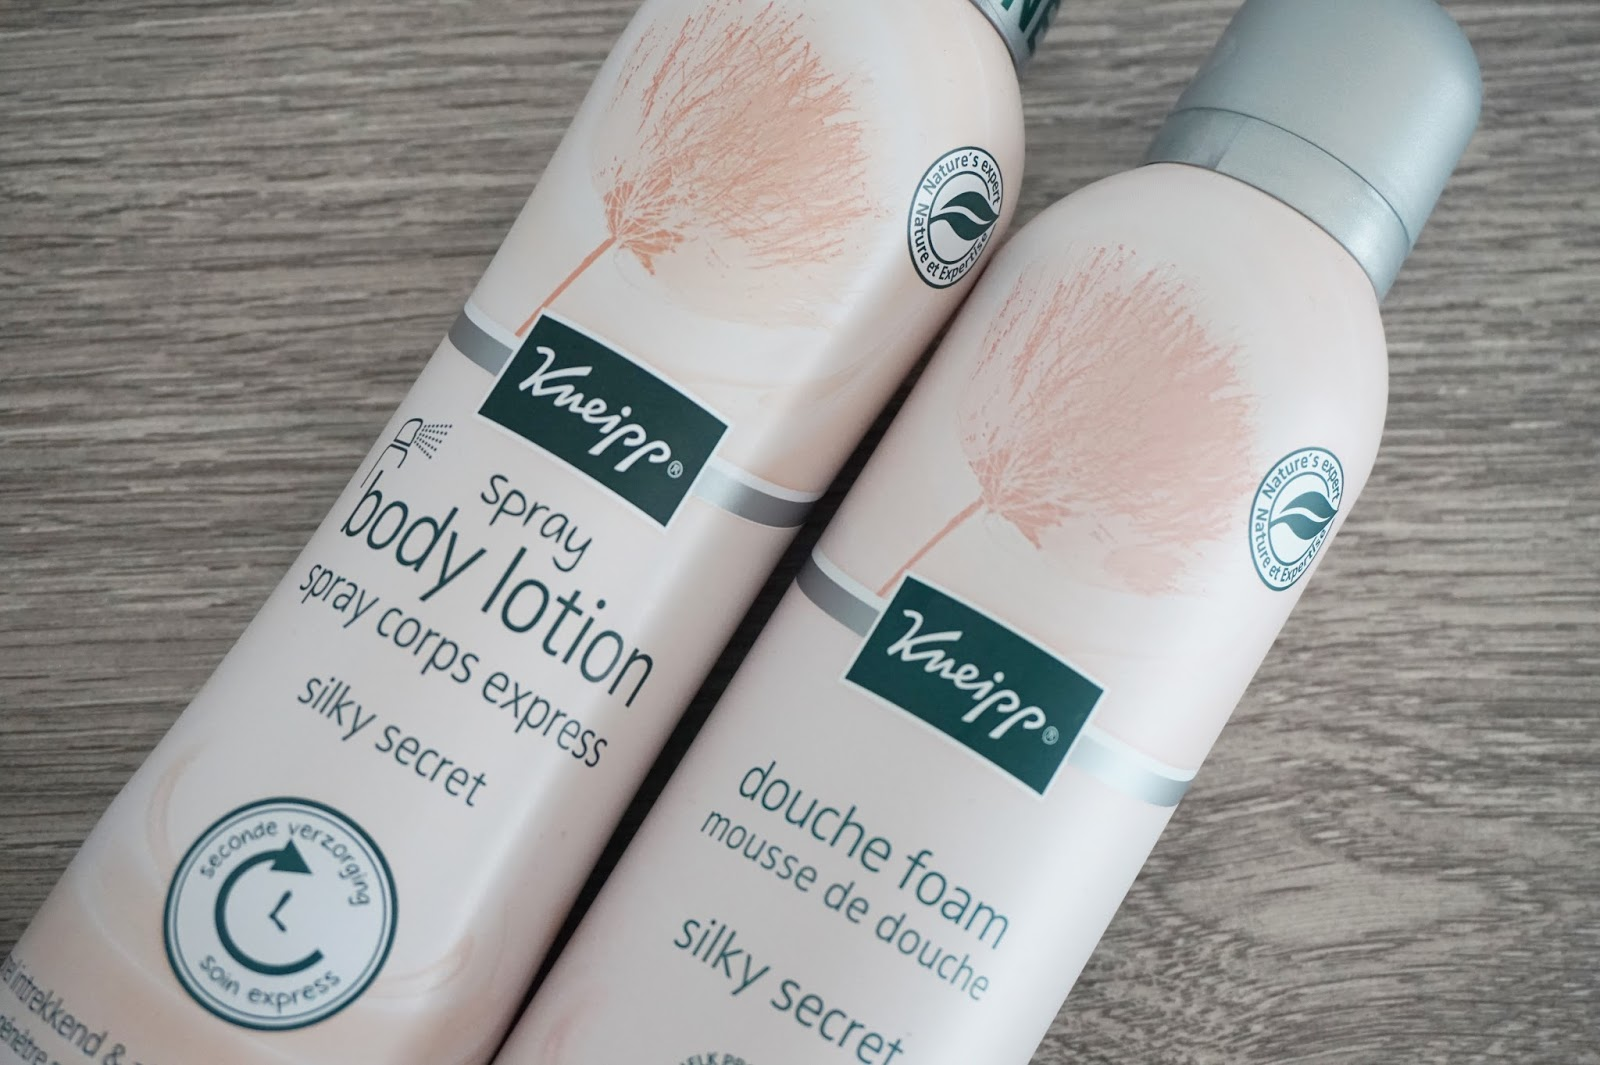 kneipp silky secret douche foam body lotion spray